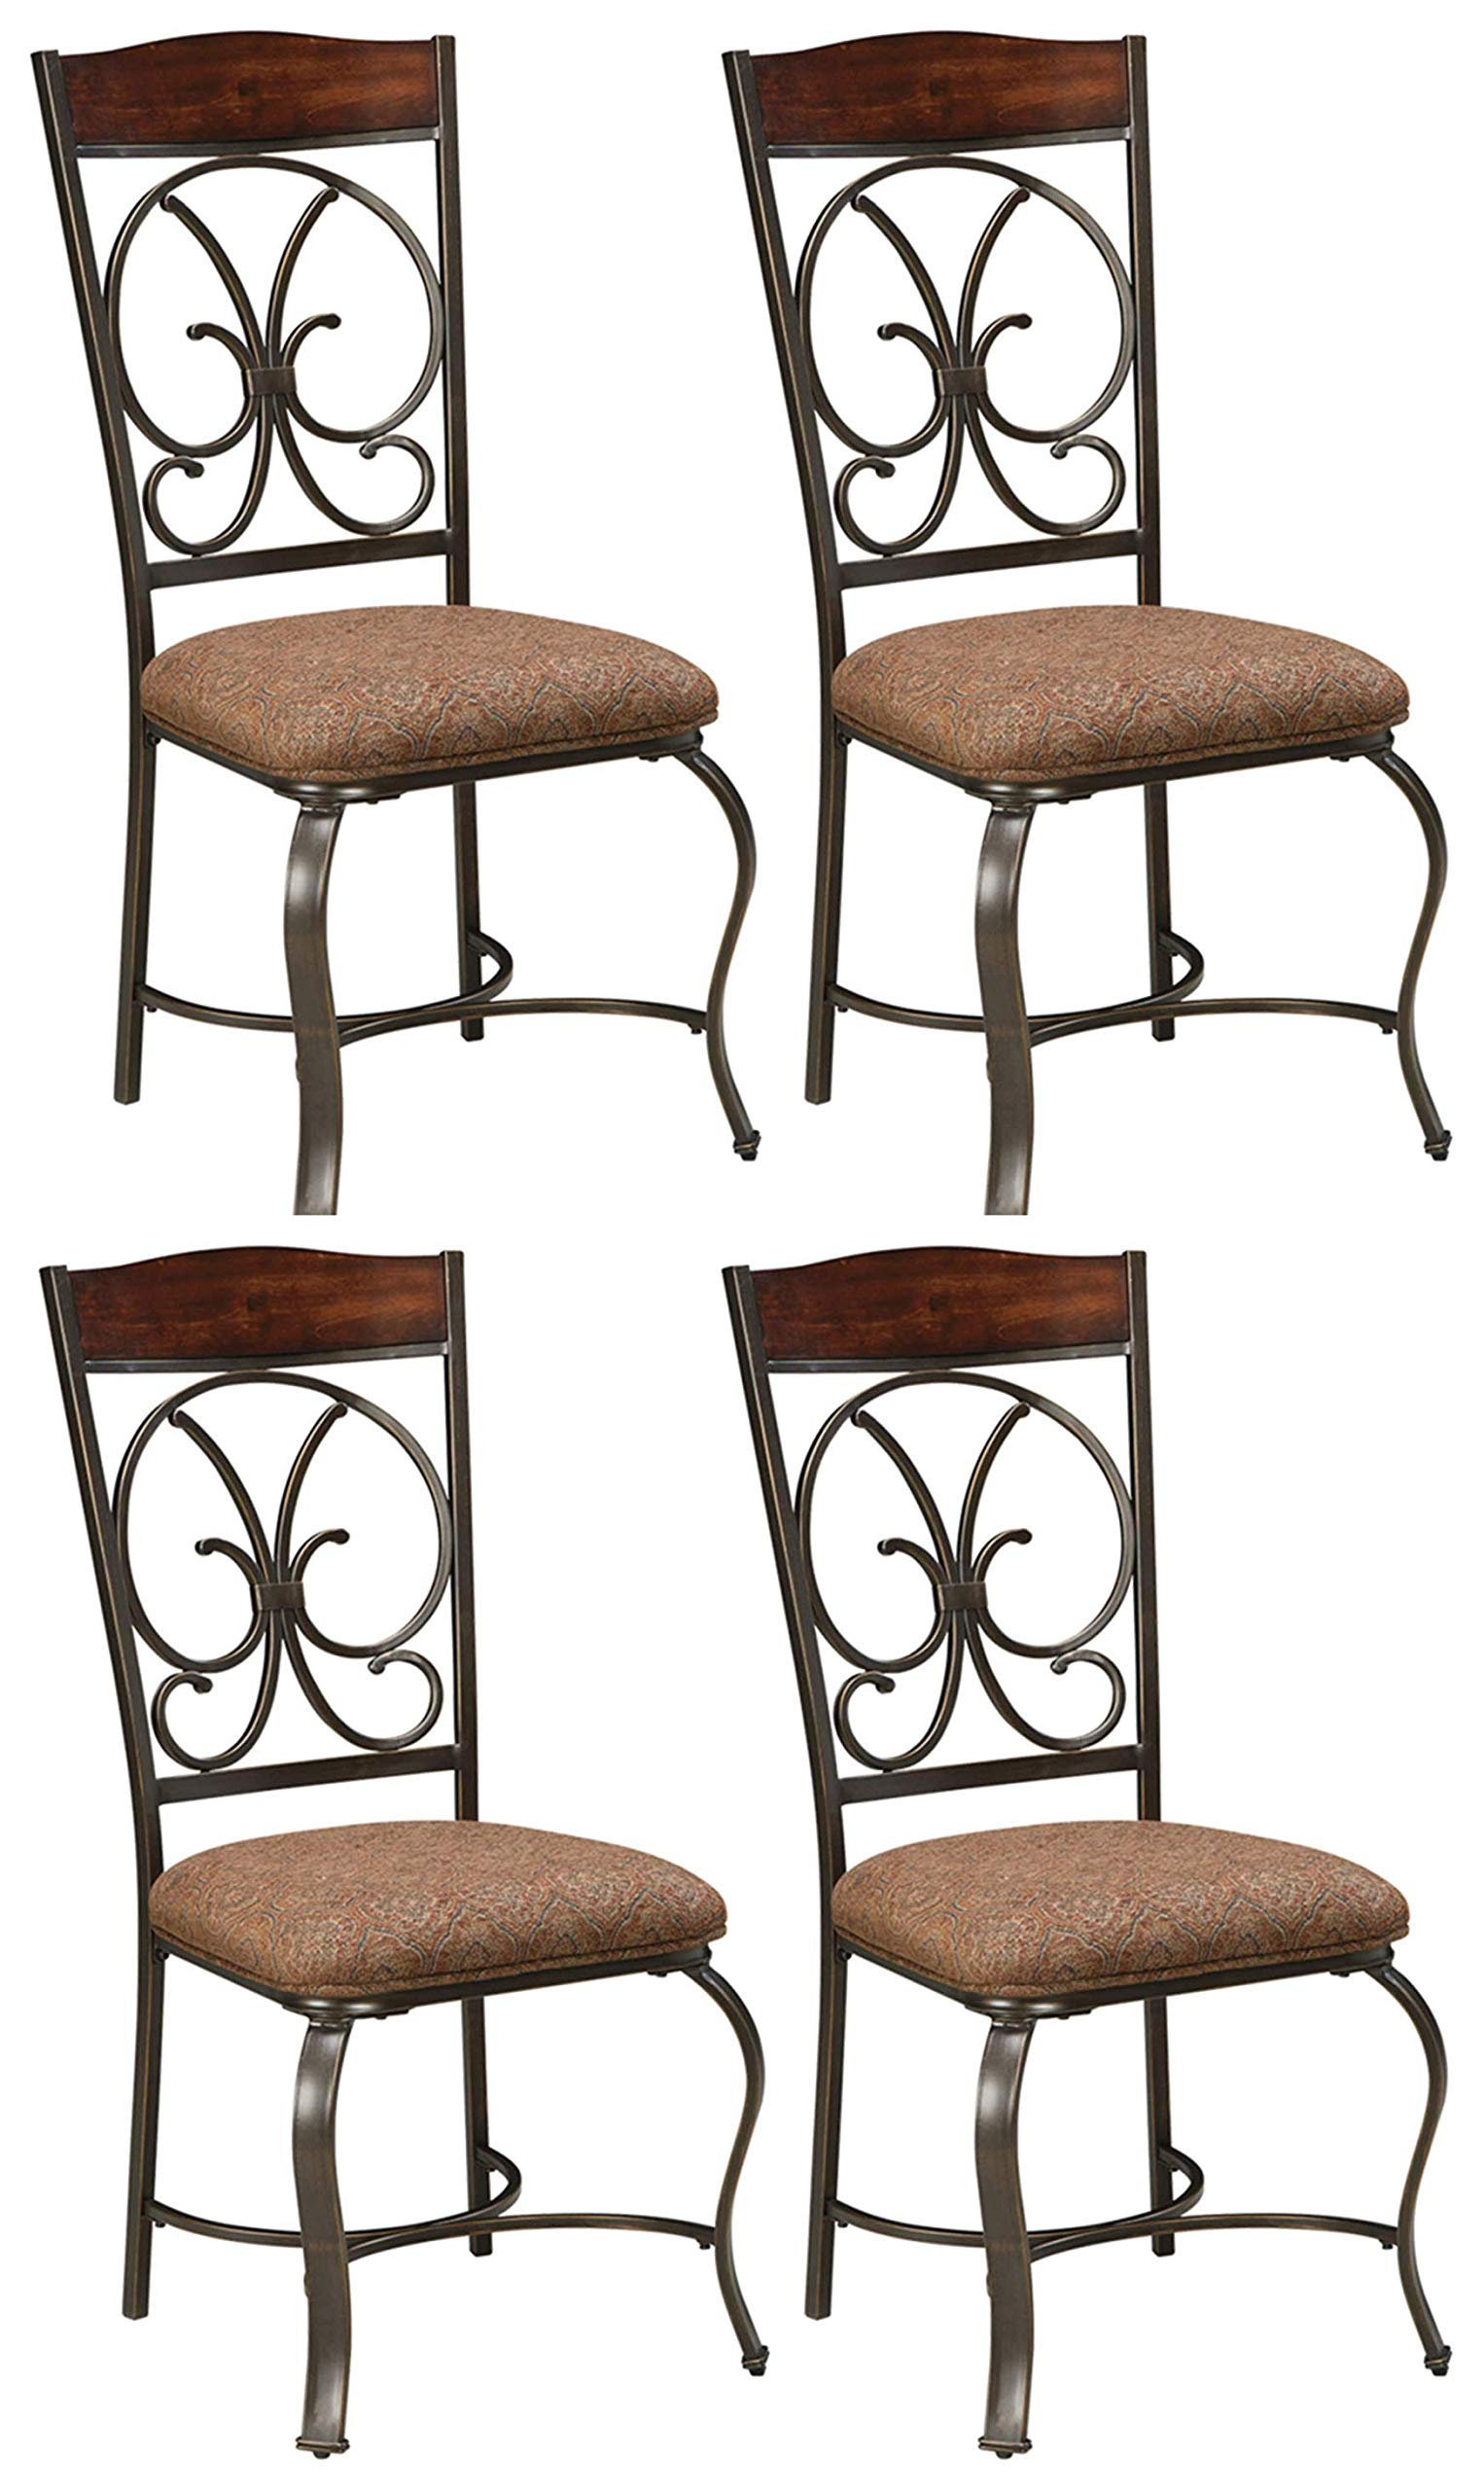 Ashley Furniture Signature Design - Glambrey Dining Room Chair Set - Scrolled Metal Accents - Set of 4 - Brown by Signature Design by Ashley (Image #1)